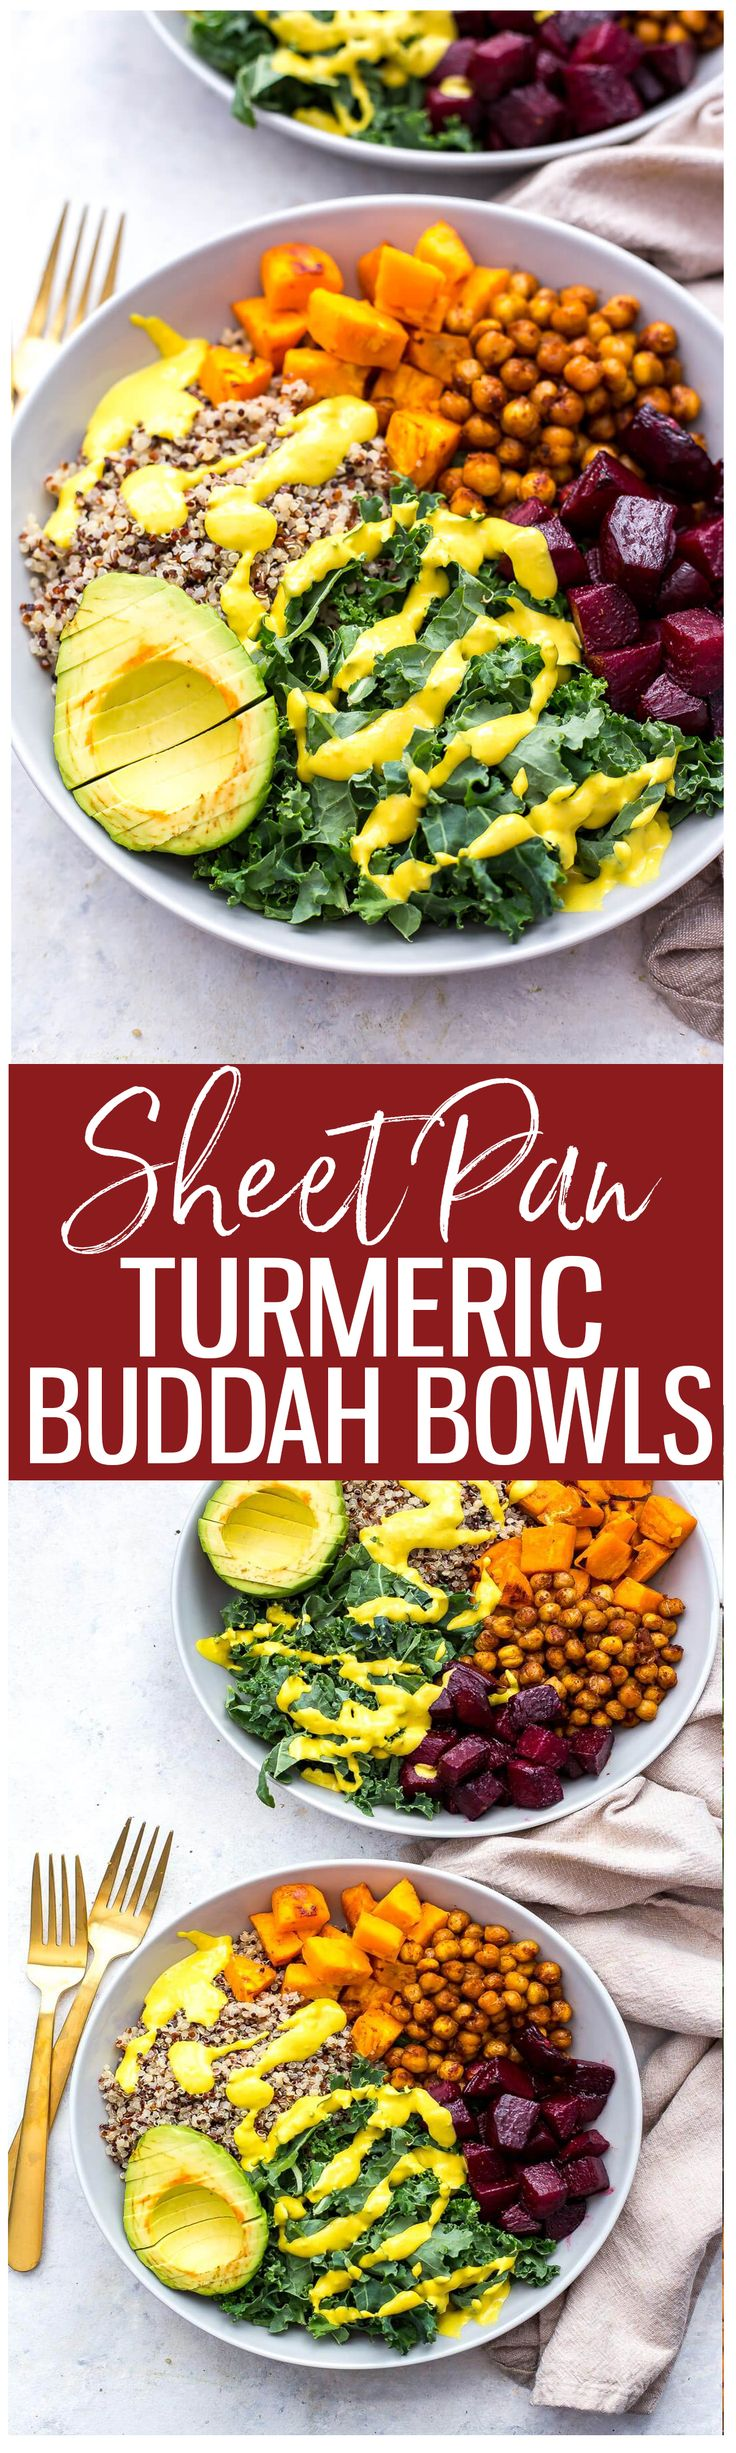 These Sheet Pan Buddha Bowls with Turmeric Tahini Dressing are a delicious, vegan make-ahead lunch idea that can be made almost all on one pan!